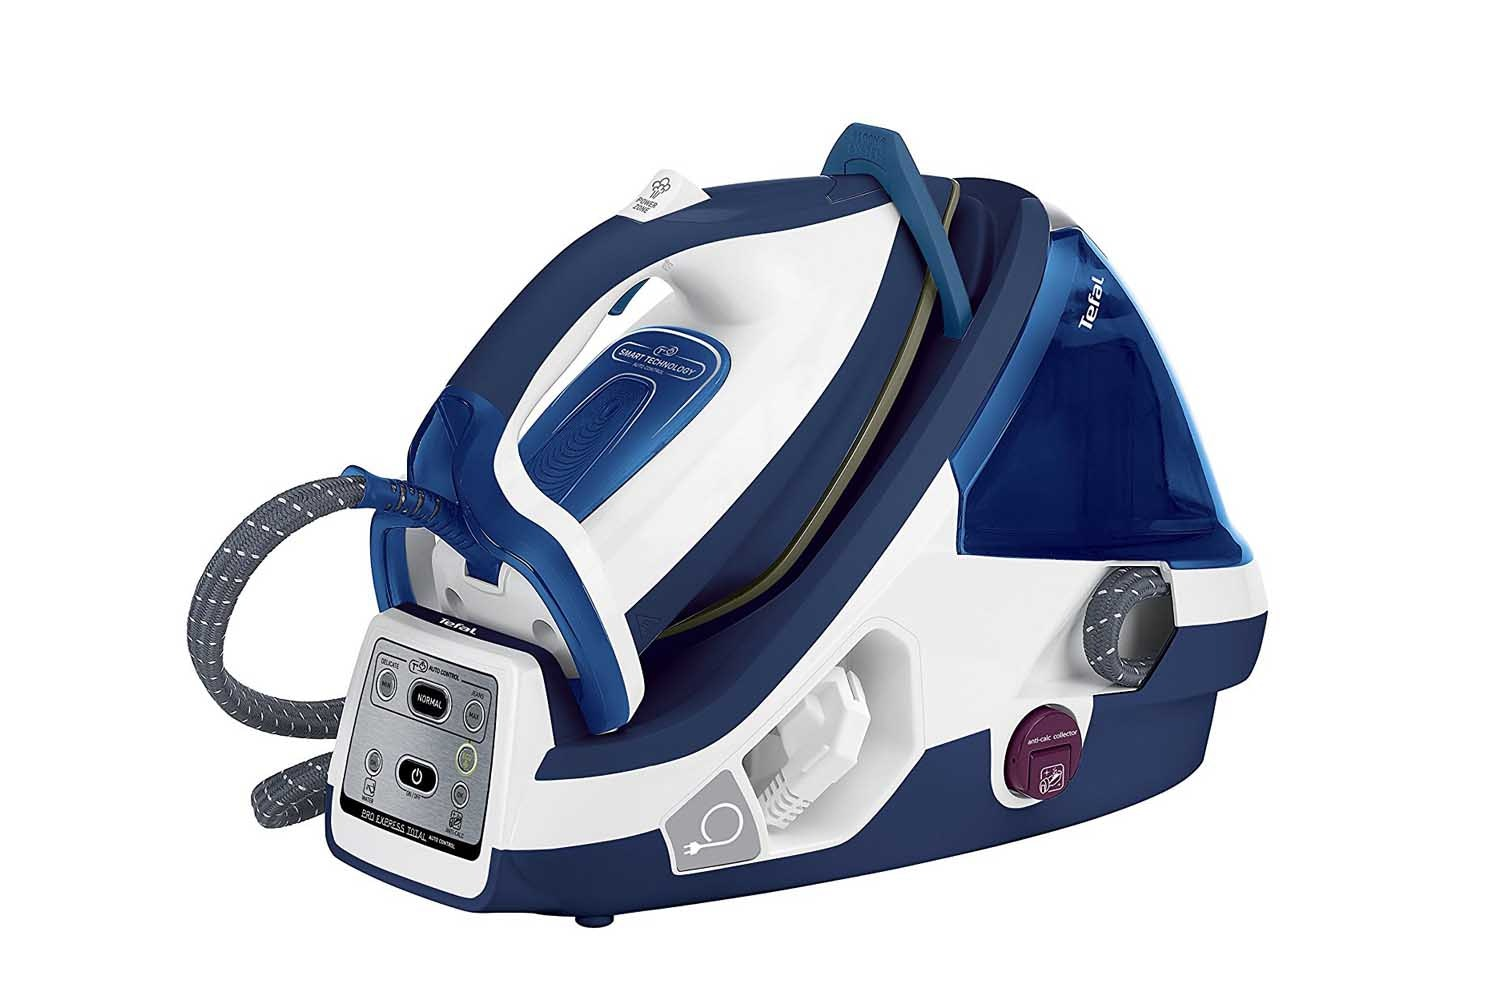 Tefal Pro Express Control Steam Generator Iron | GV8962G0